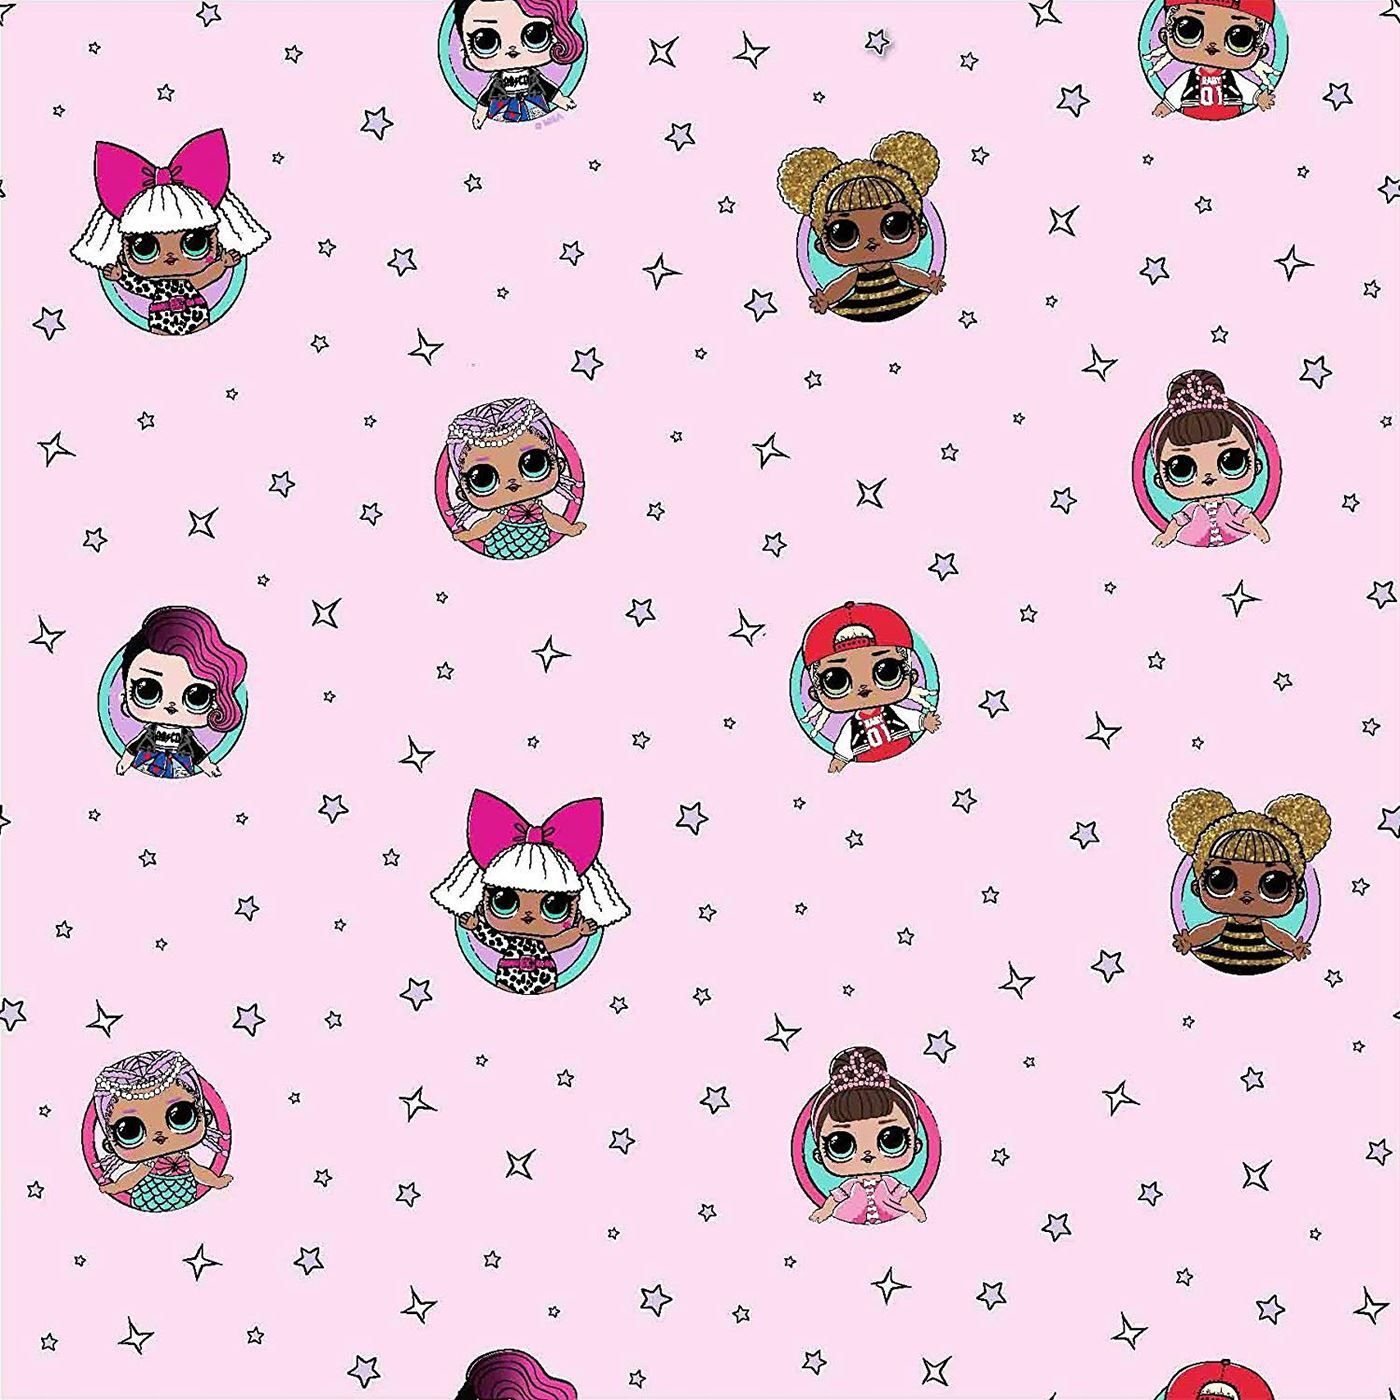 Download Lol Surprise And Search More Hd Desktop And Mobile Wallpapers On Itl Cat Kids Bedroom Wallpaper Pink Kids Bedrooms Wallpaper Iphone Christmas